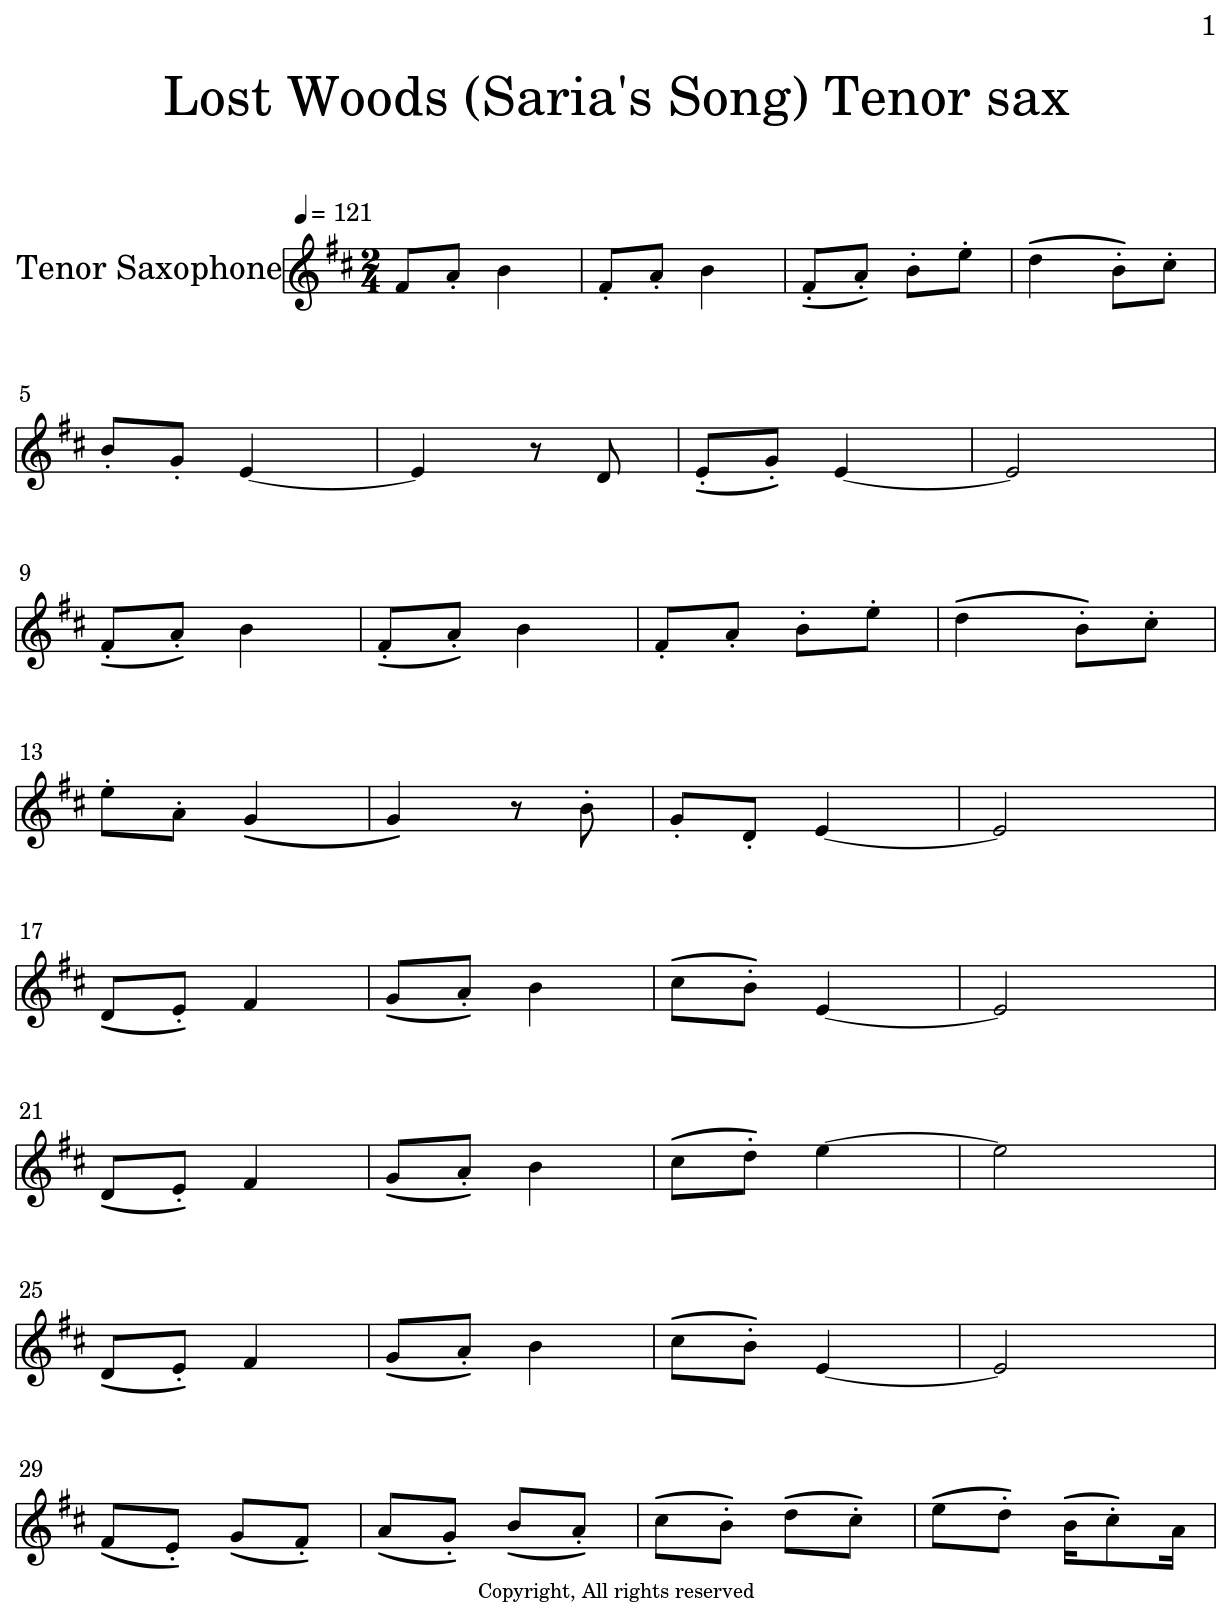 Lost Woods (Saria's Song) Tenor sax - Flat